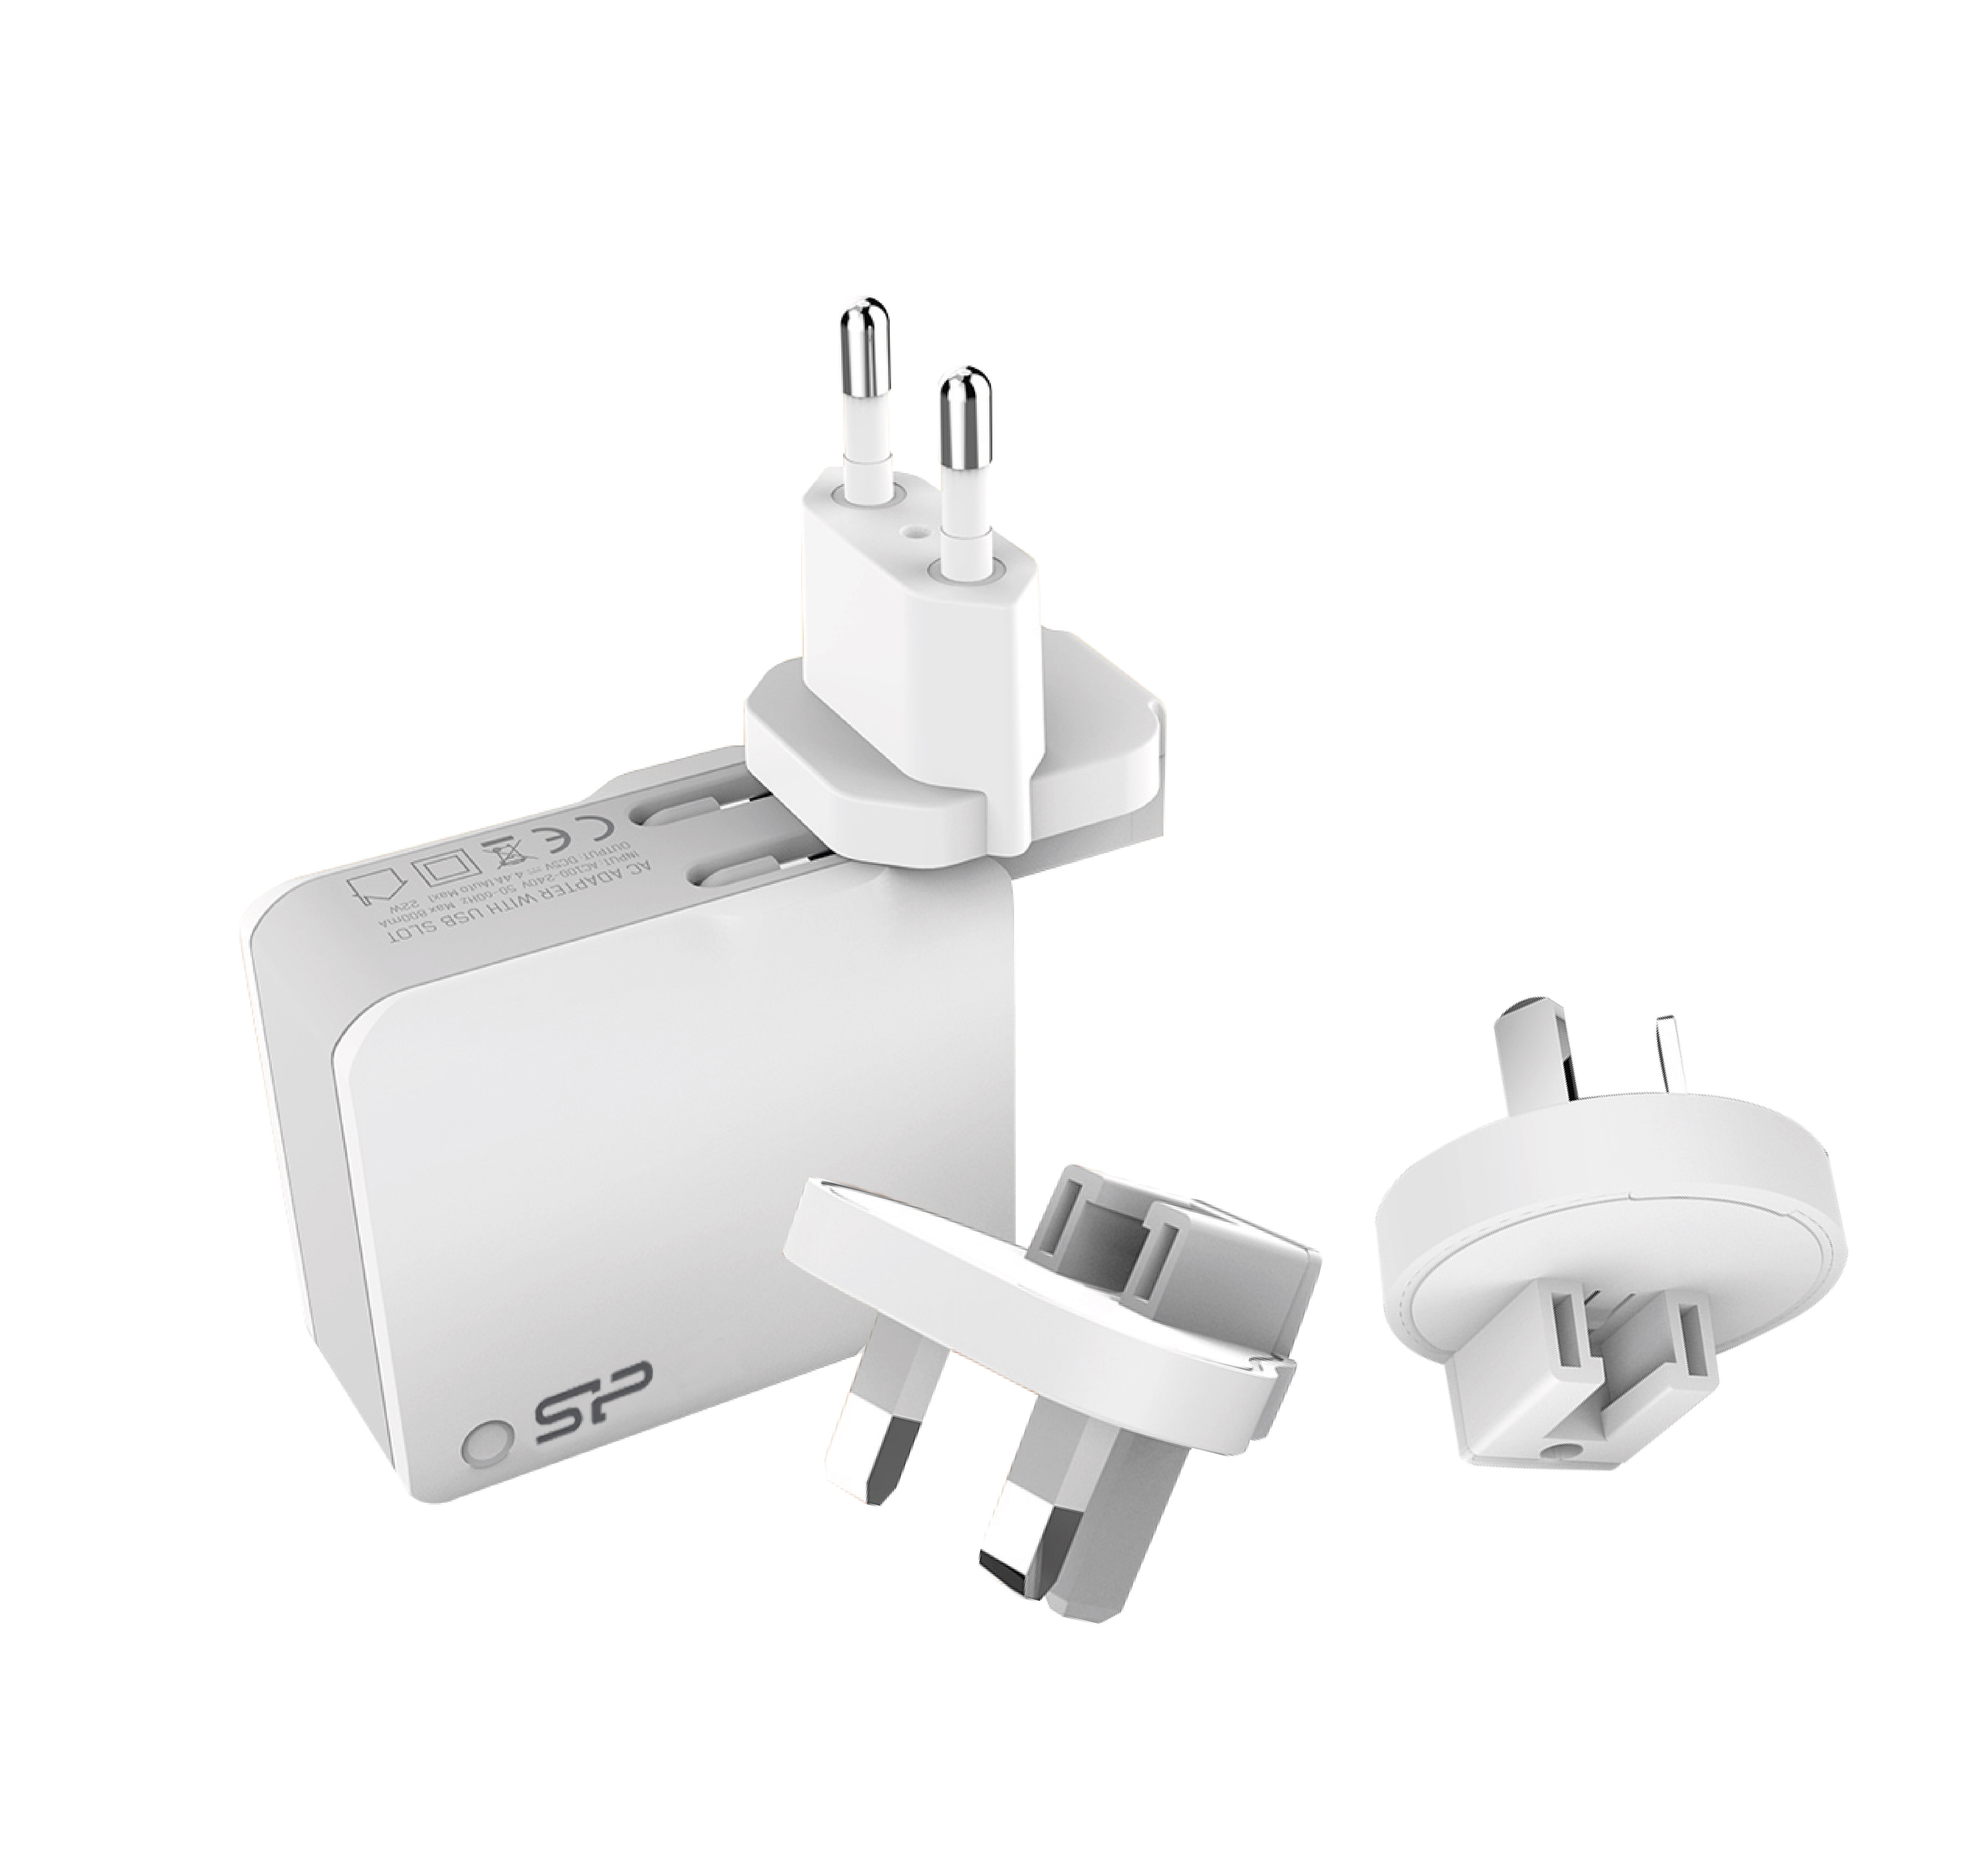 Silicon Power Boost Charger WC102P 2-port USB Travel Charger @ 2.4A + Adapters US/UK/AU/EU